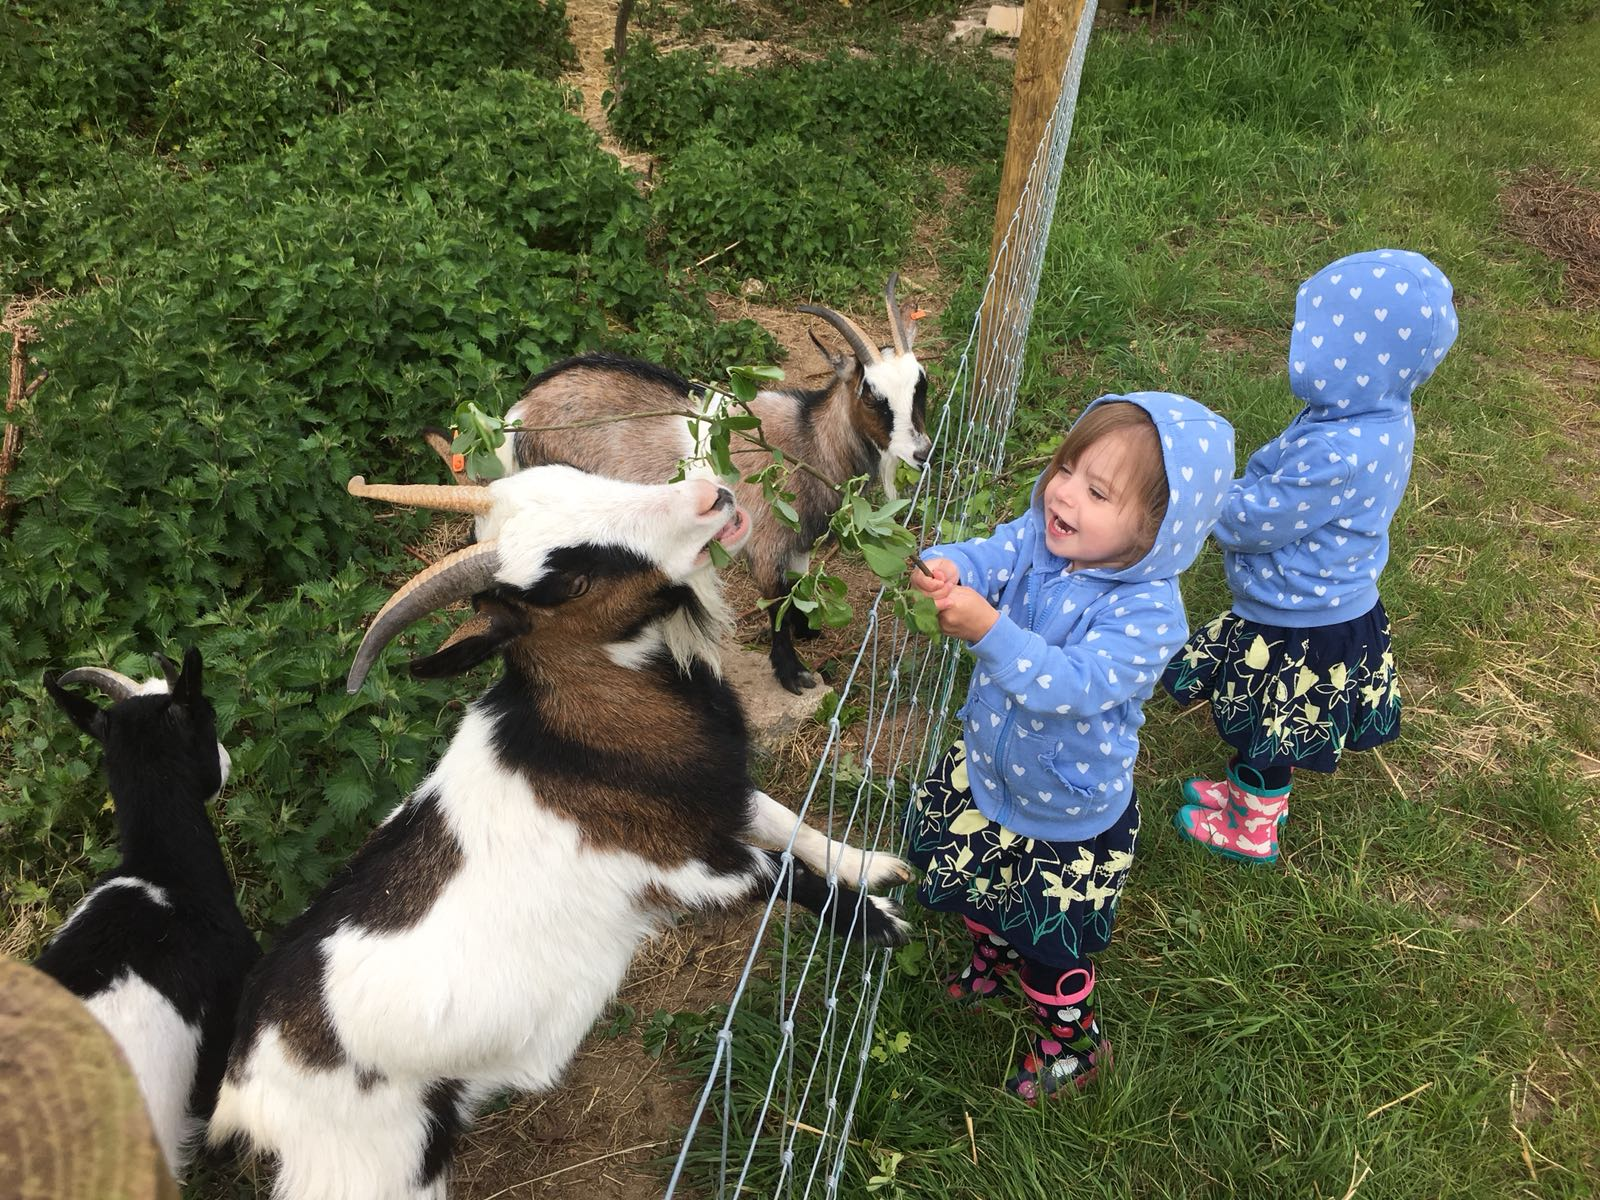 Family travel to Kennel Farm in the New Forest. The Lounge Twins feeding the goats at Kennel farm